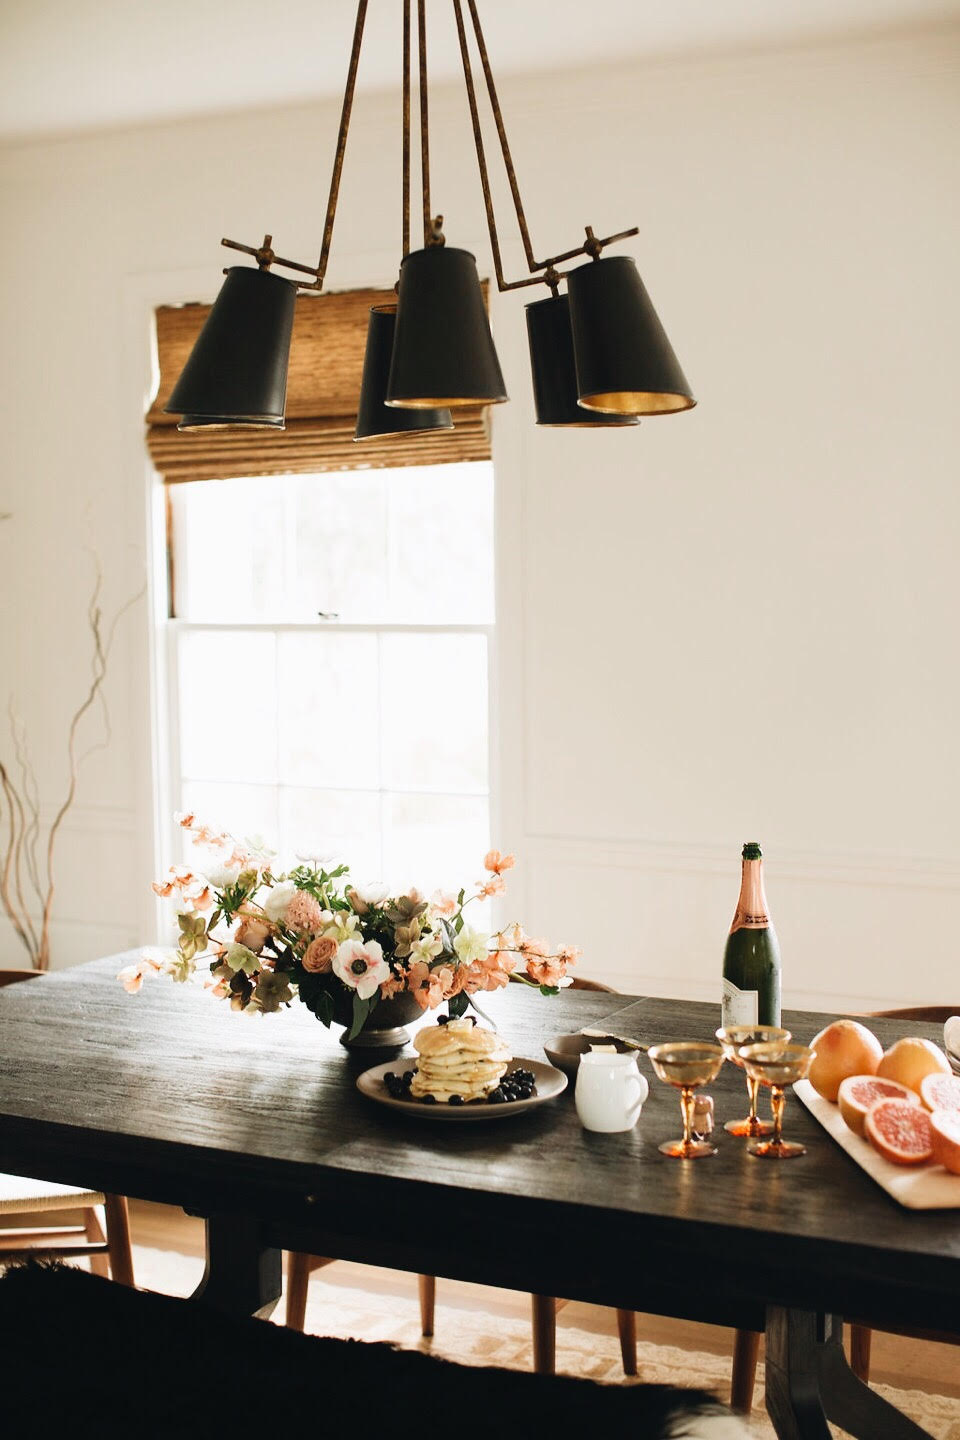 host a simple valentine's day brunch at home!